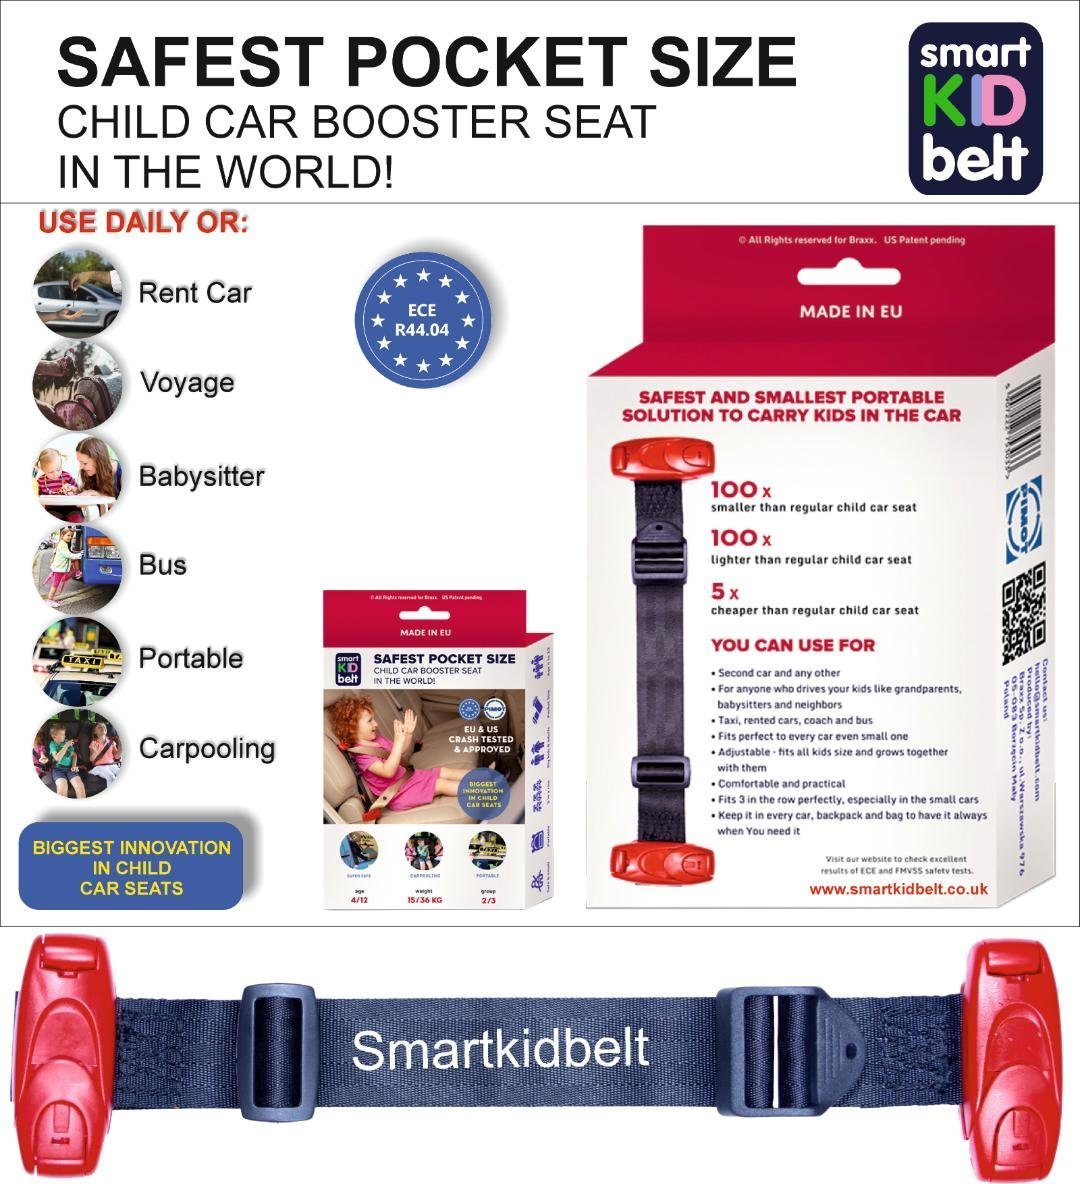 Smart Kid Belt Pocket Size Car Seat Booster Group 2 / 3 For Kids 4 - 12 Years Old EU ECE R44 Certified EU Road Legal